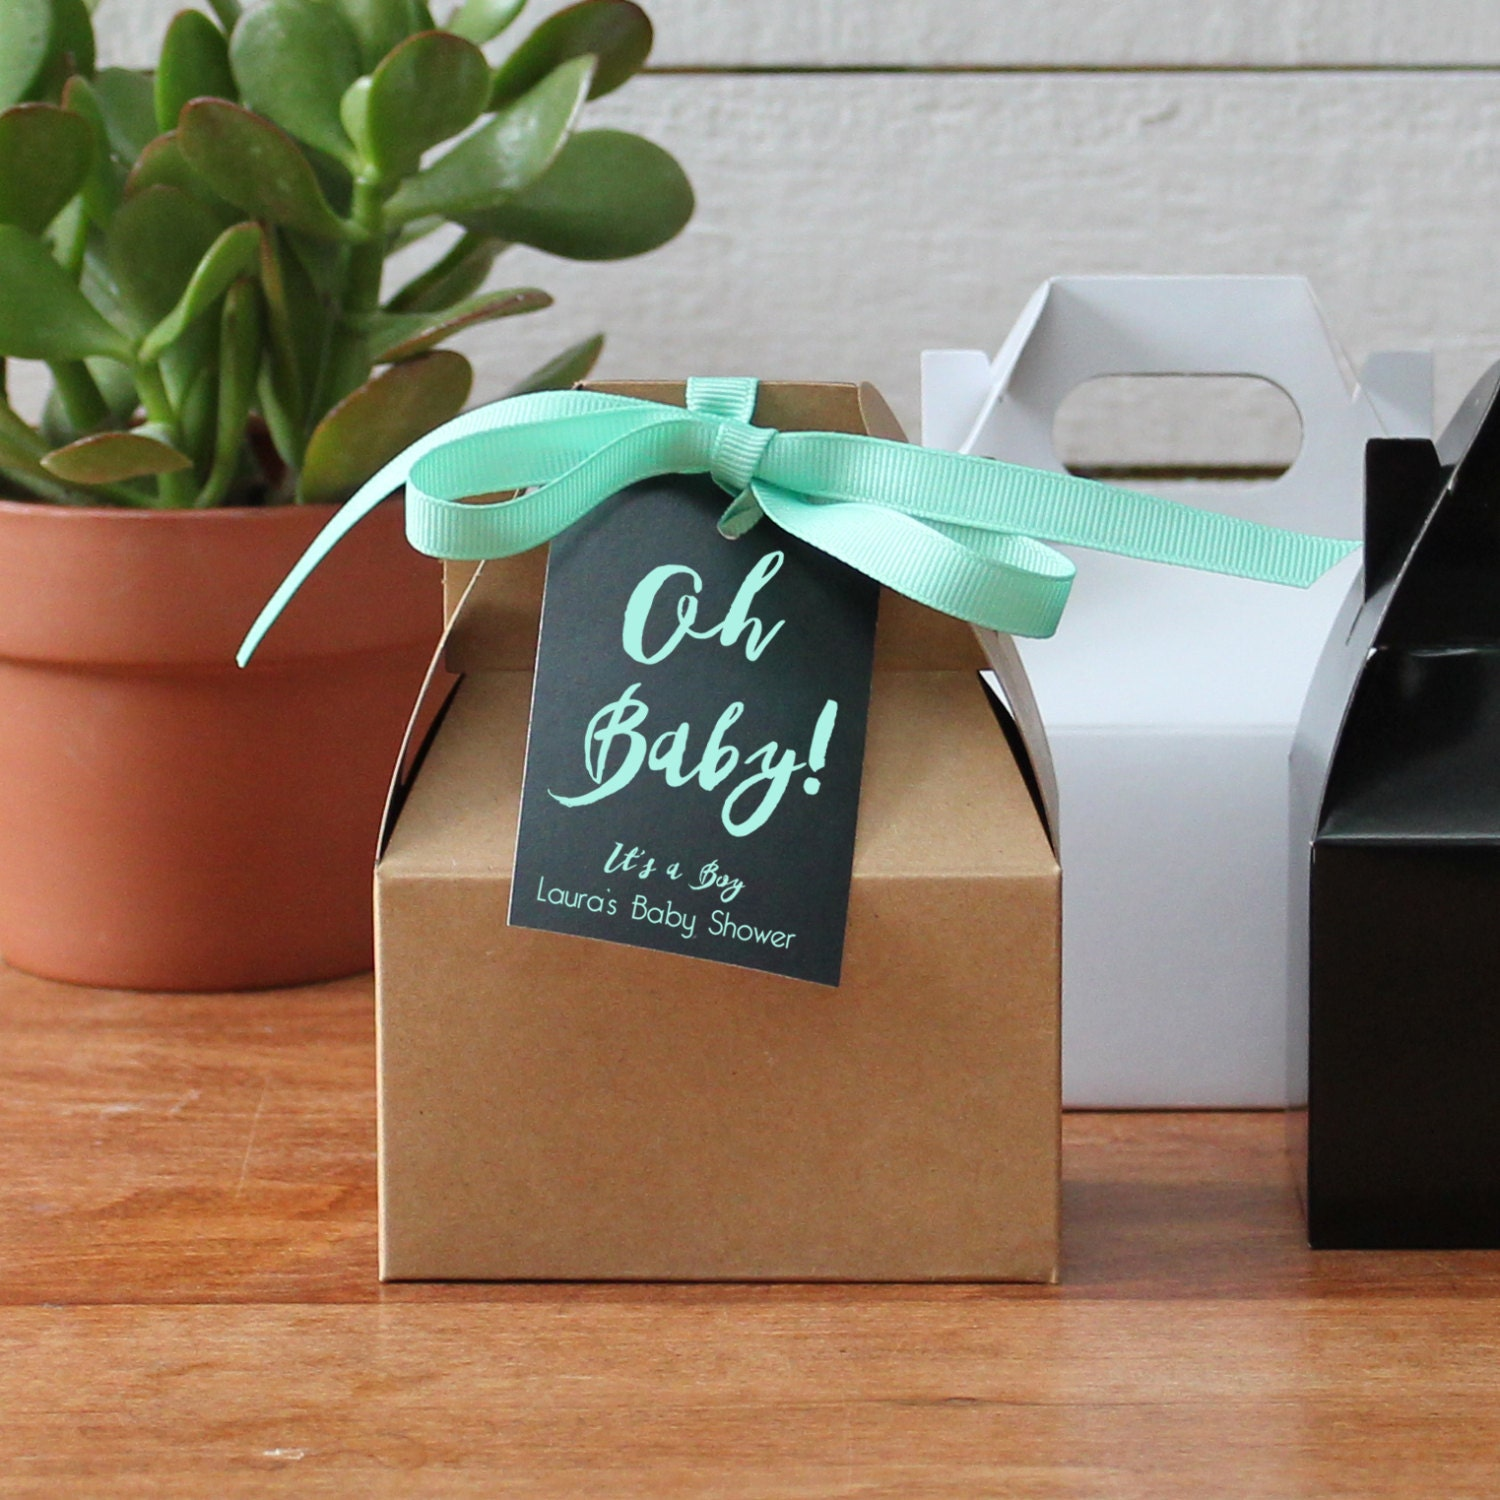 Boxes For Baby Shower Favors: 12 Oh Baby Mini Gable Favor Boxes Baby Shower Favors Baby